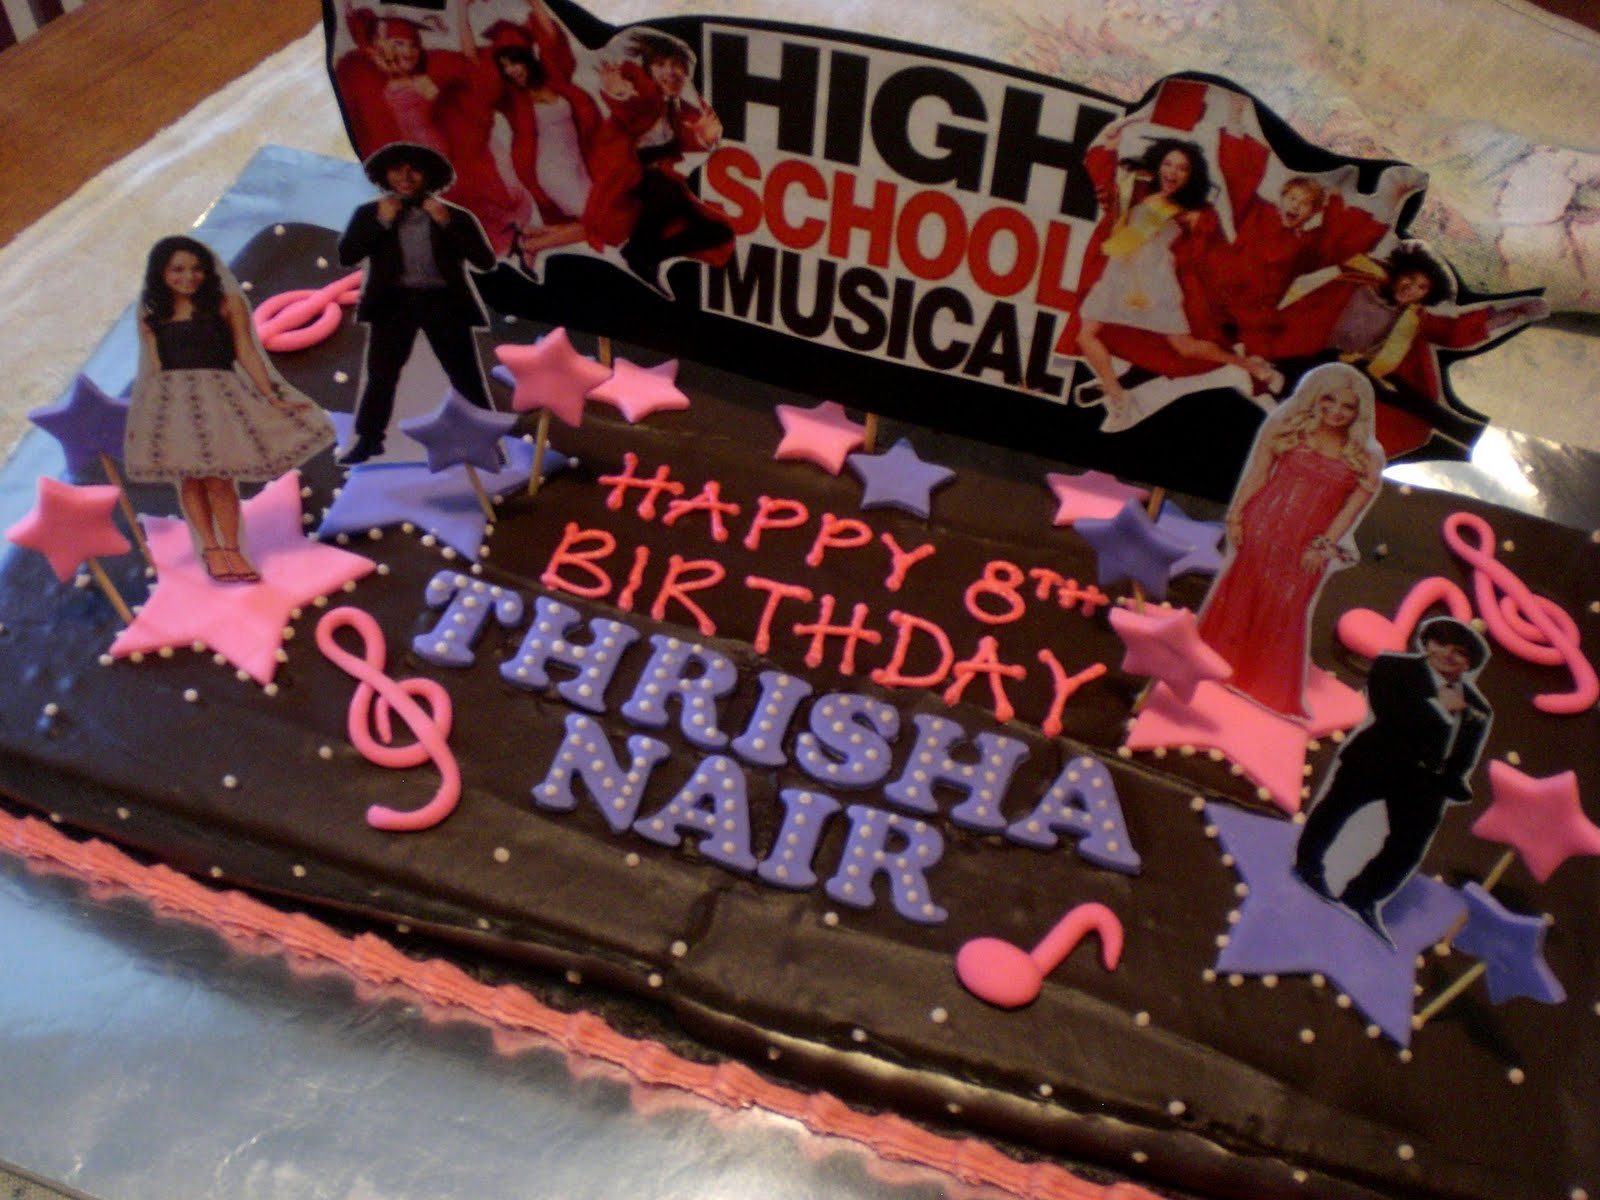 Sugar Rush High School Musical Birthday Cake